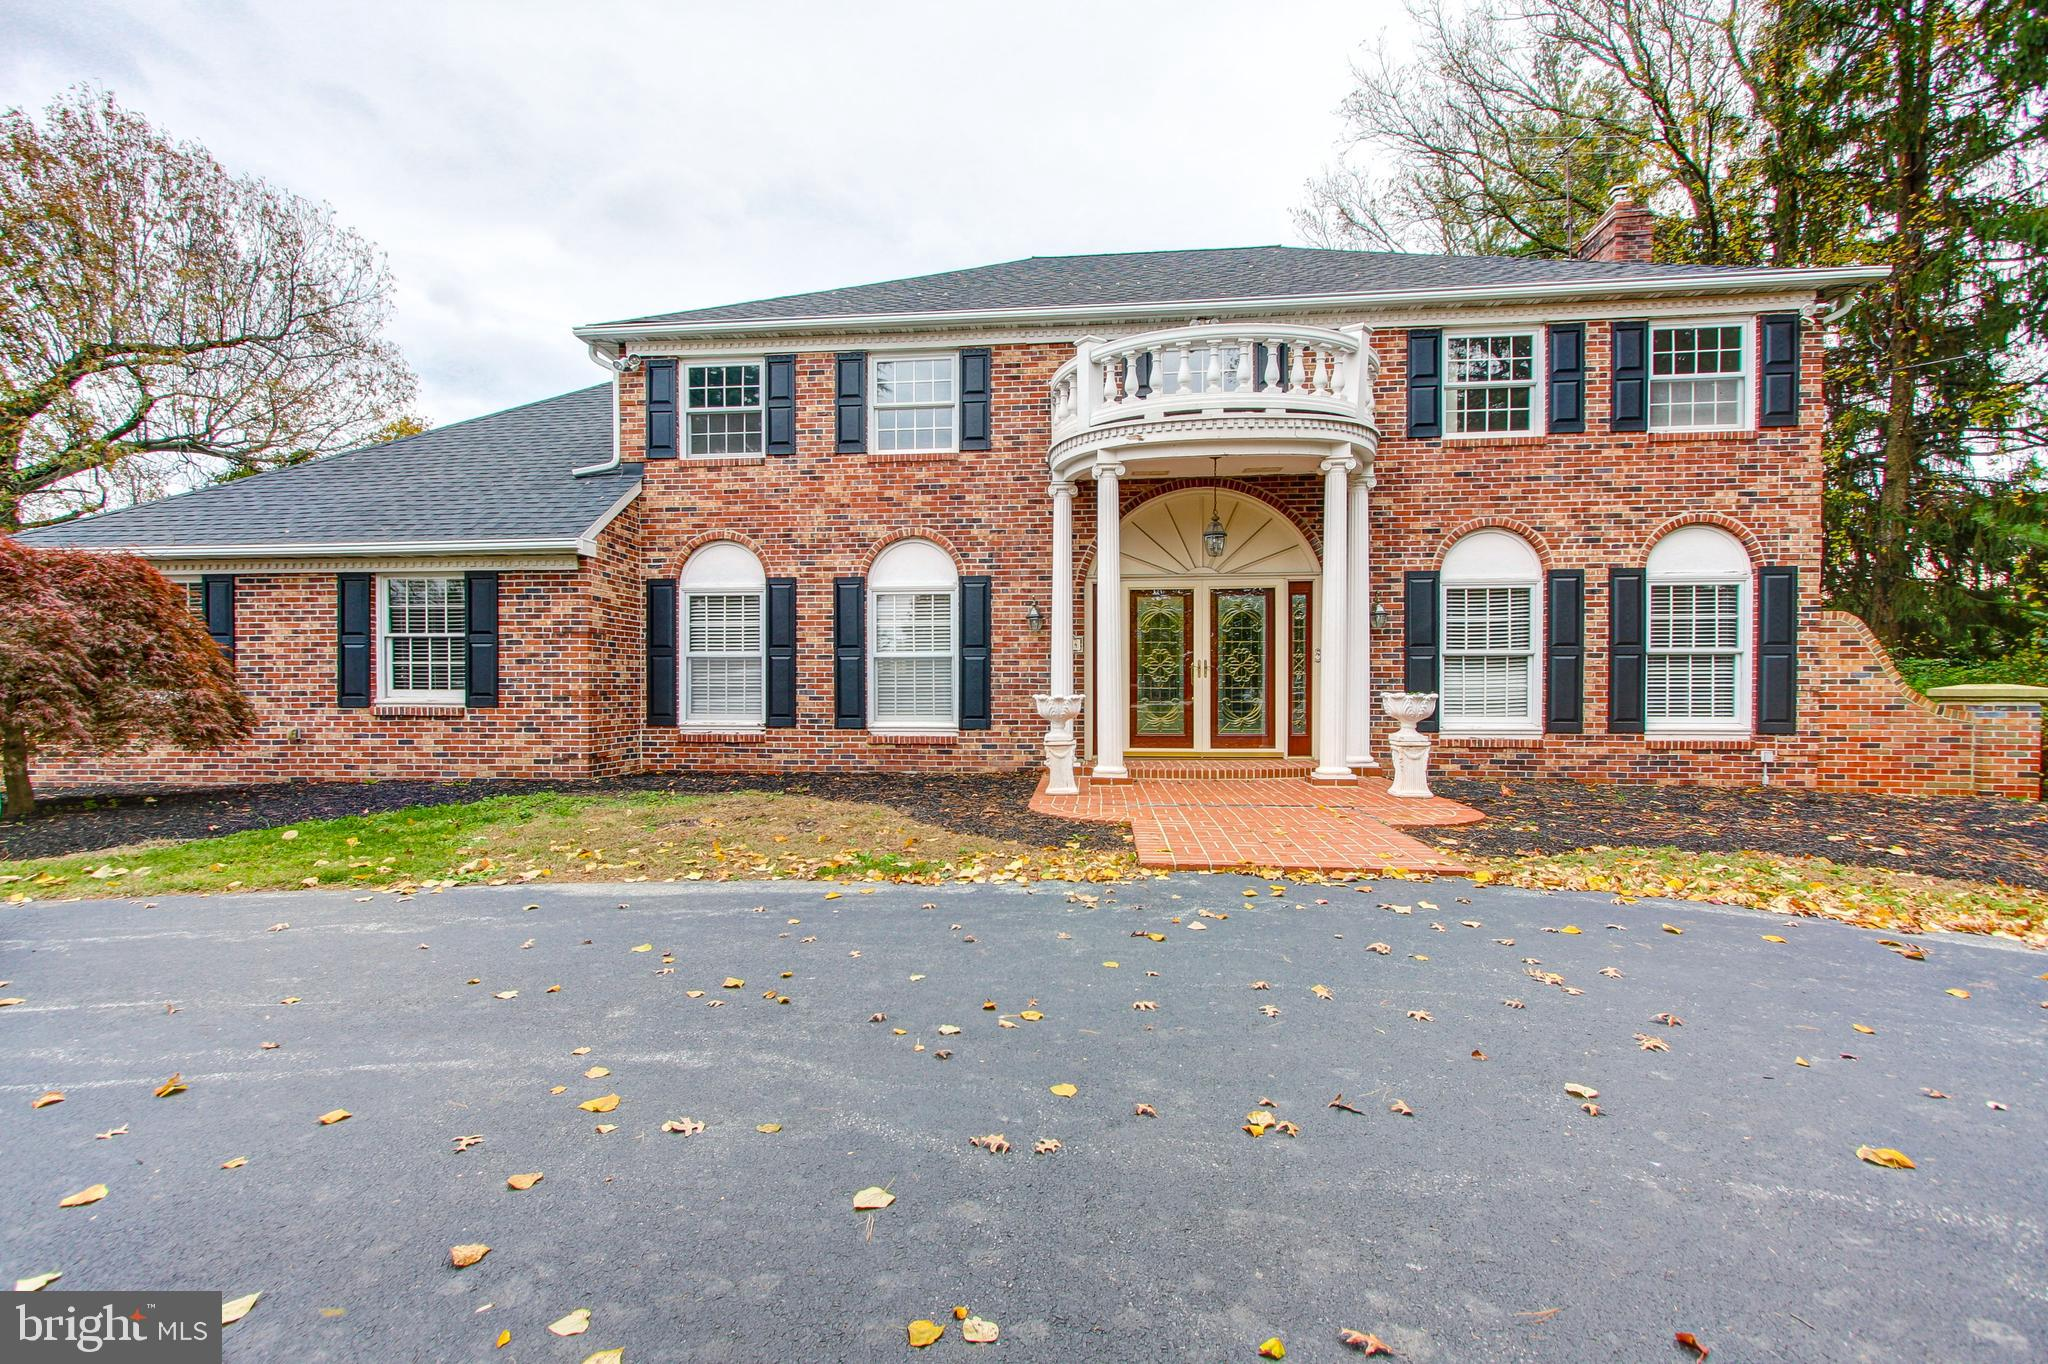 1524 SANDY HILL ROAD, PLYMOUTH MEETING, PA 19462